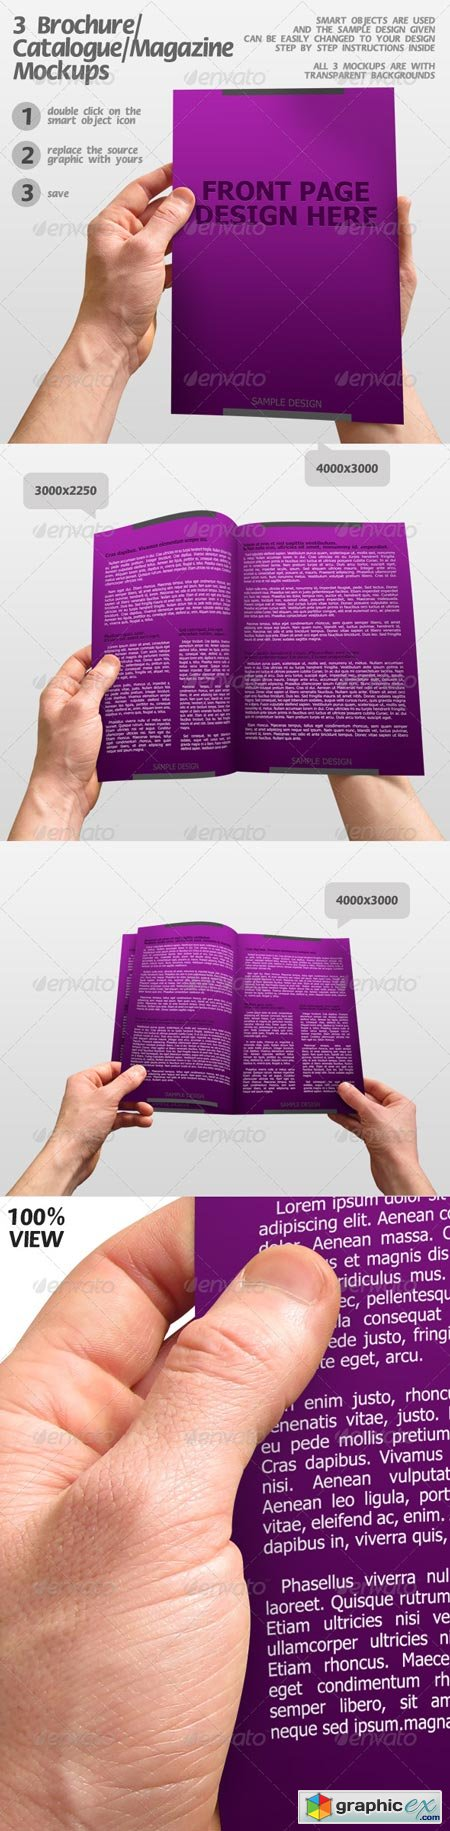 3 Brochure Catalogue Magazine Mockups 153082